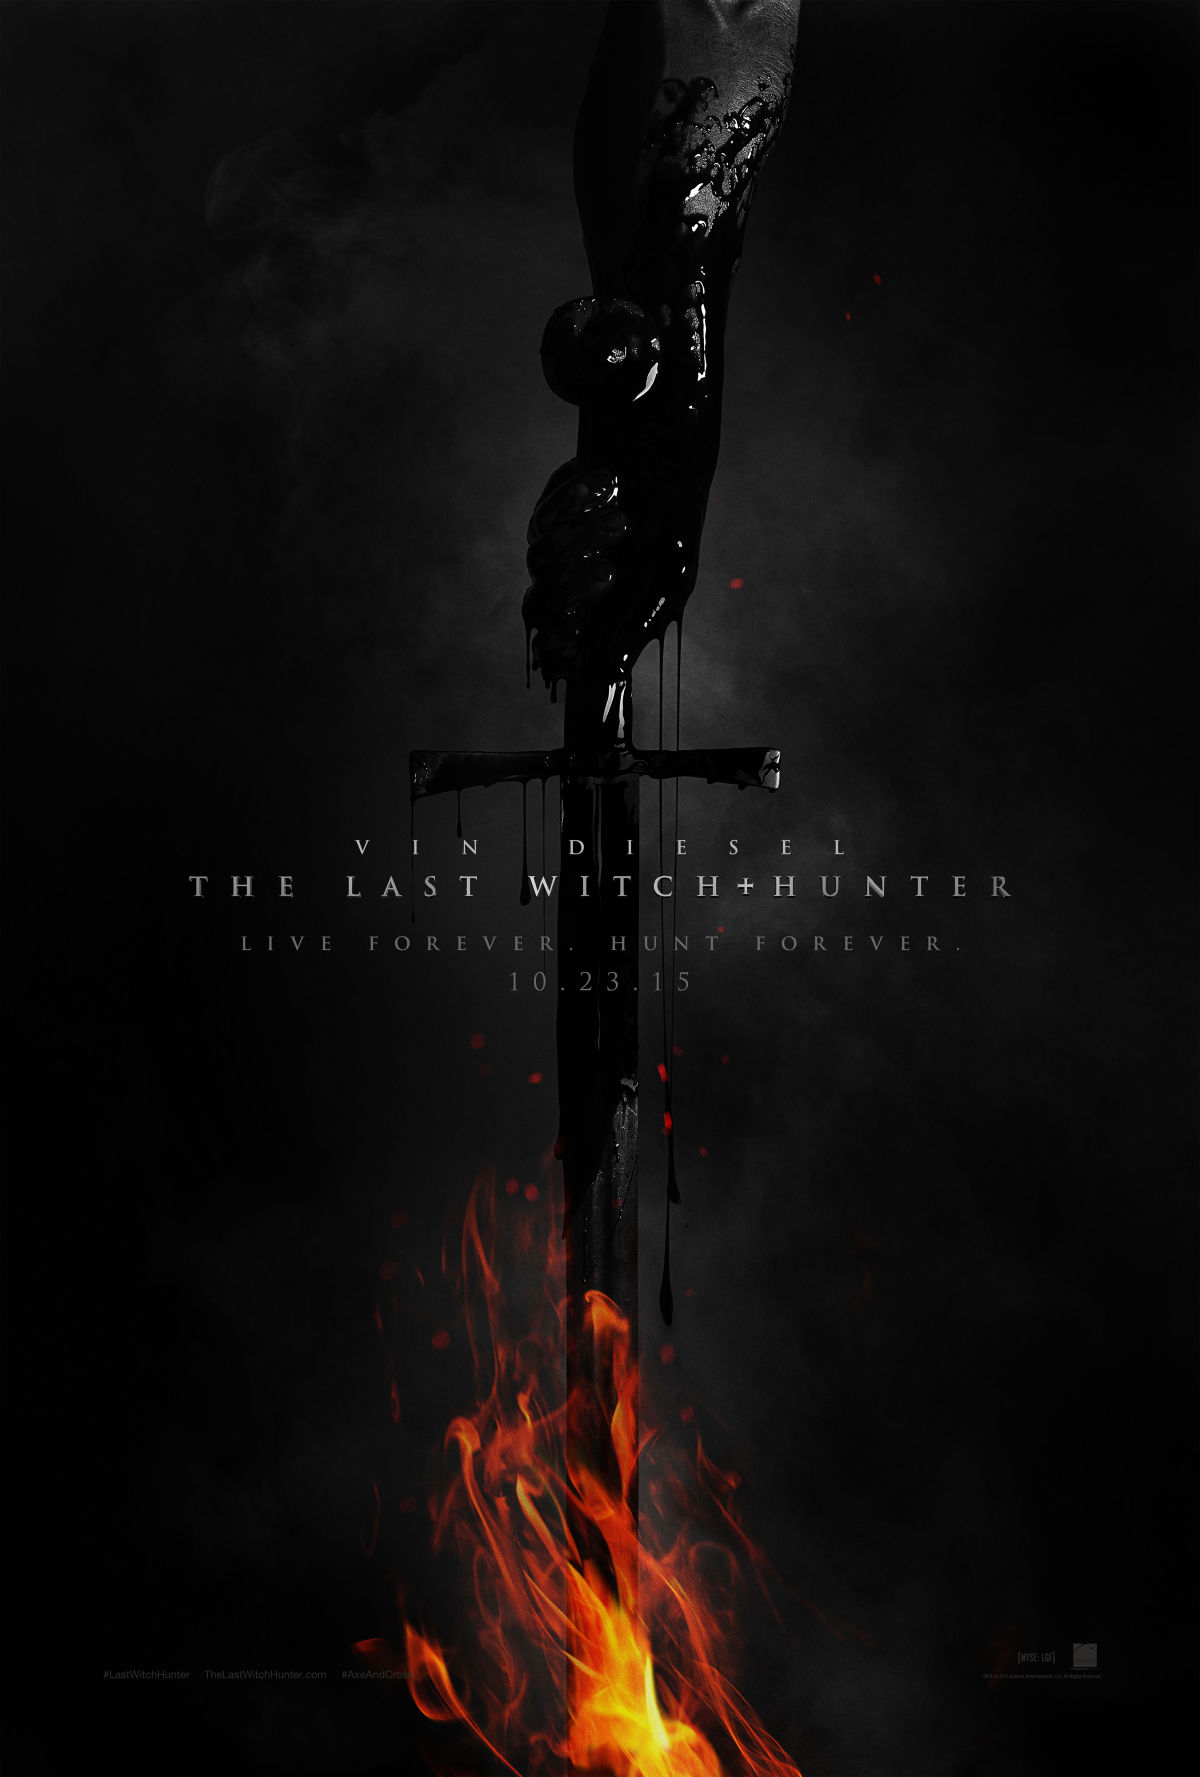 the last with hunter poster